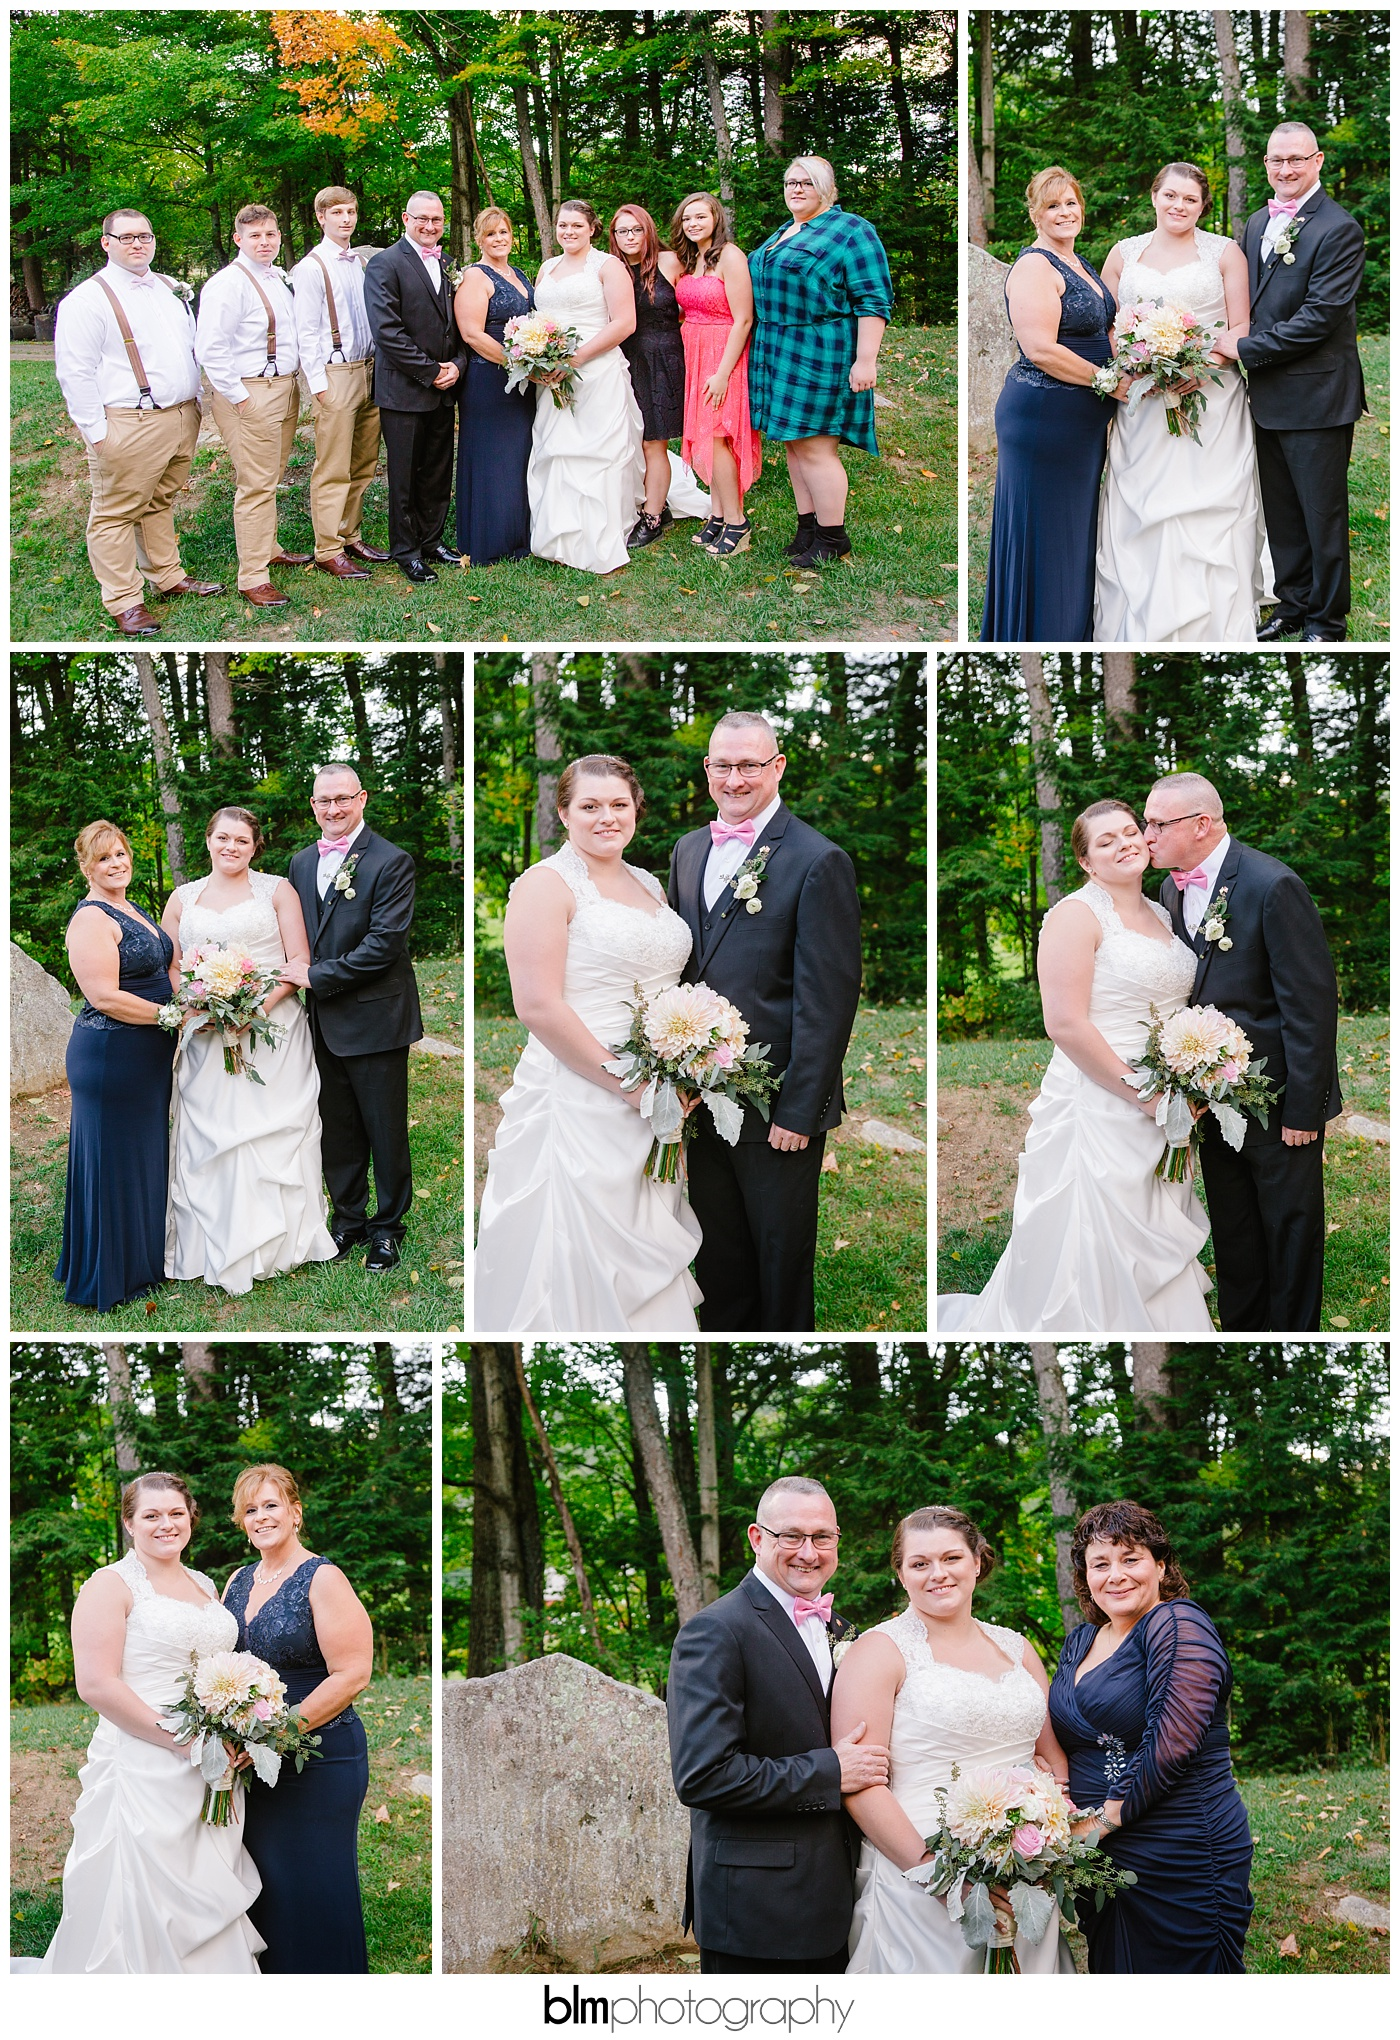 #Alpaca6pack,#lezgetmarried924,2 Brides,Artistic,BLM,Candid,Creative,Danielle & Kasey,Danielle & Kasey's Wedding at Stonewall Farm,Danielle Soucy,Gay Wedding,Kasey Malone,Keene,Keene Wedding Photographer,Lesbian Wedding,Love is for everyone,Malone Wedding,Mrs & Mrs,NH,NH Wedding,NH Wedding Photographer,Natural,Natural Light,New England,New England Wedding,New Hampshire Wedding Photographer,Peterborough Wedding Photographer,Photo,Photographer,Photography,Photojournalistic,Professional,Professional Wedding Photography,Sep,September,Stonewall Farm,Two Brides,USA,United States,Vivid,Wedding,Wedding Photography,Wedding Photography Packages,www.blmphoto.com,©BLM Photography 2016,